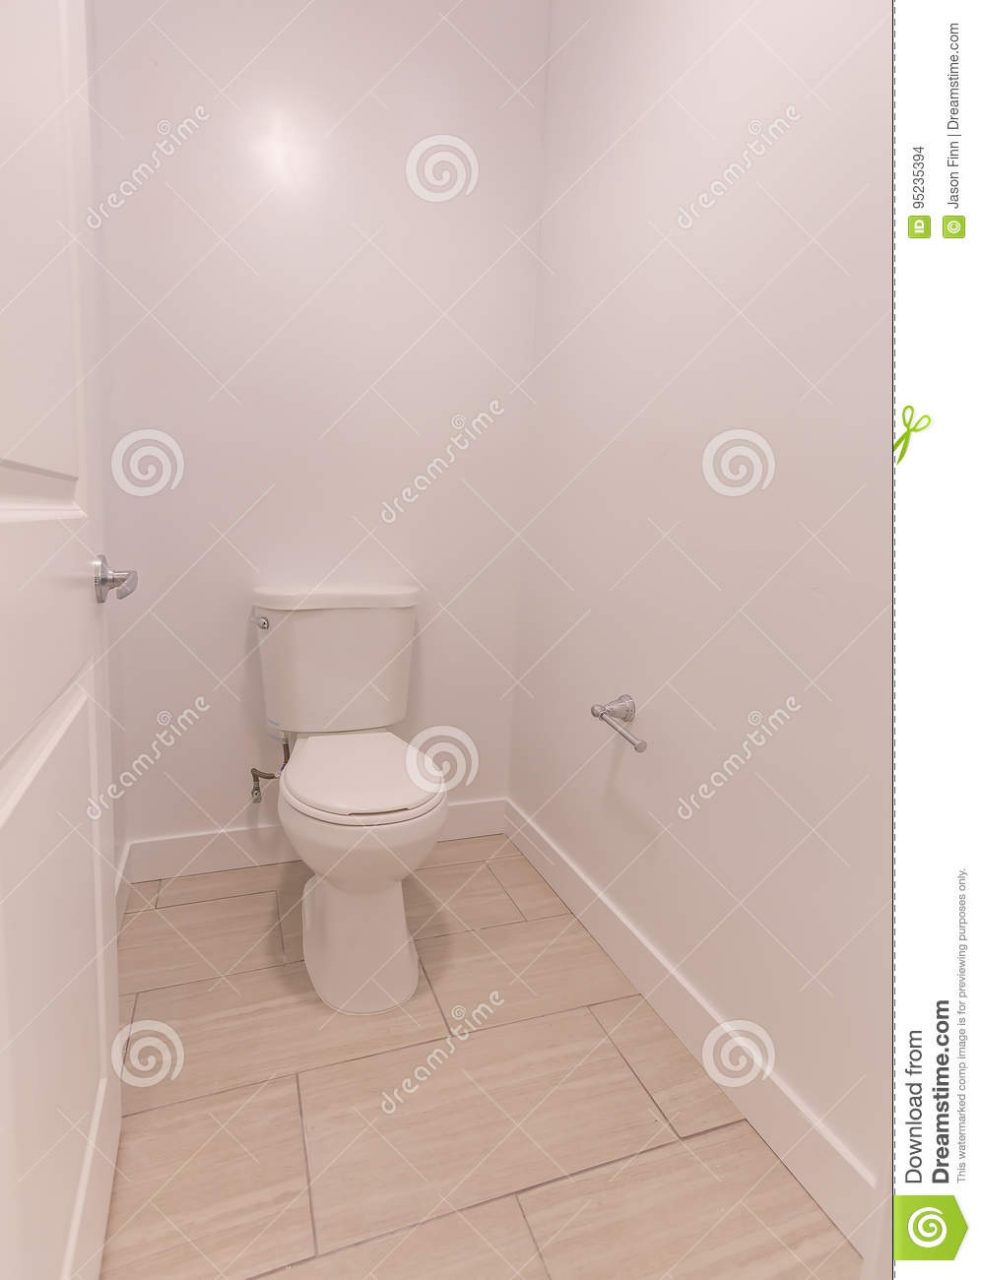 White Corner Toilet In Bathroom With Tan Tiles And White Walls In